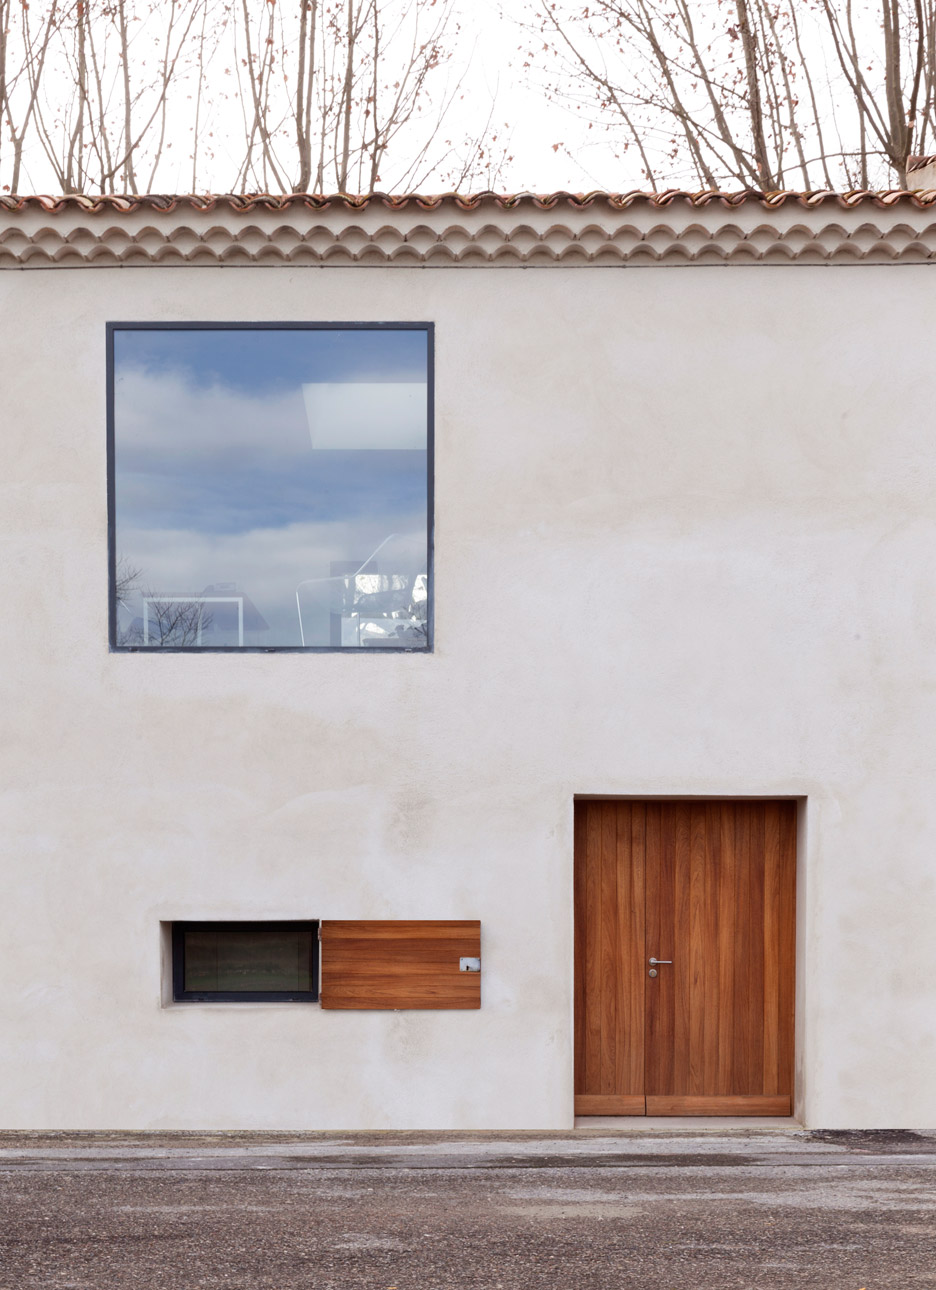 Renovation in Provence by Michael Menuet